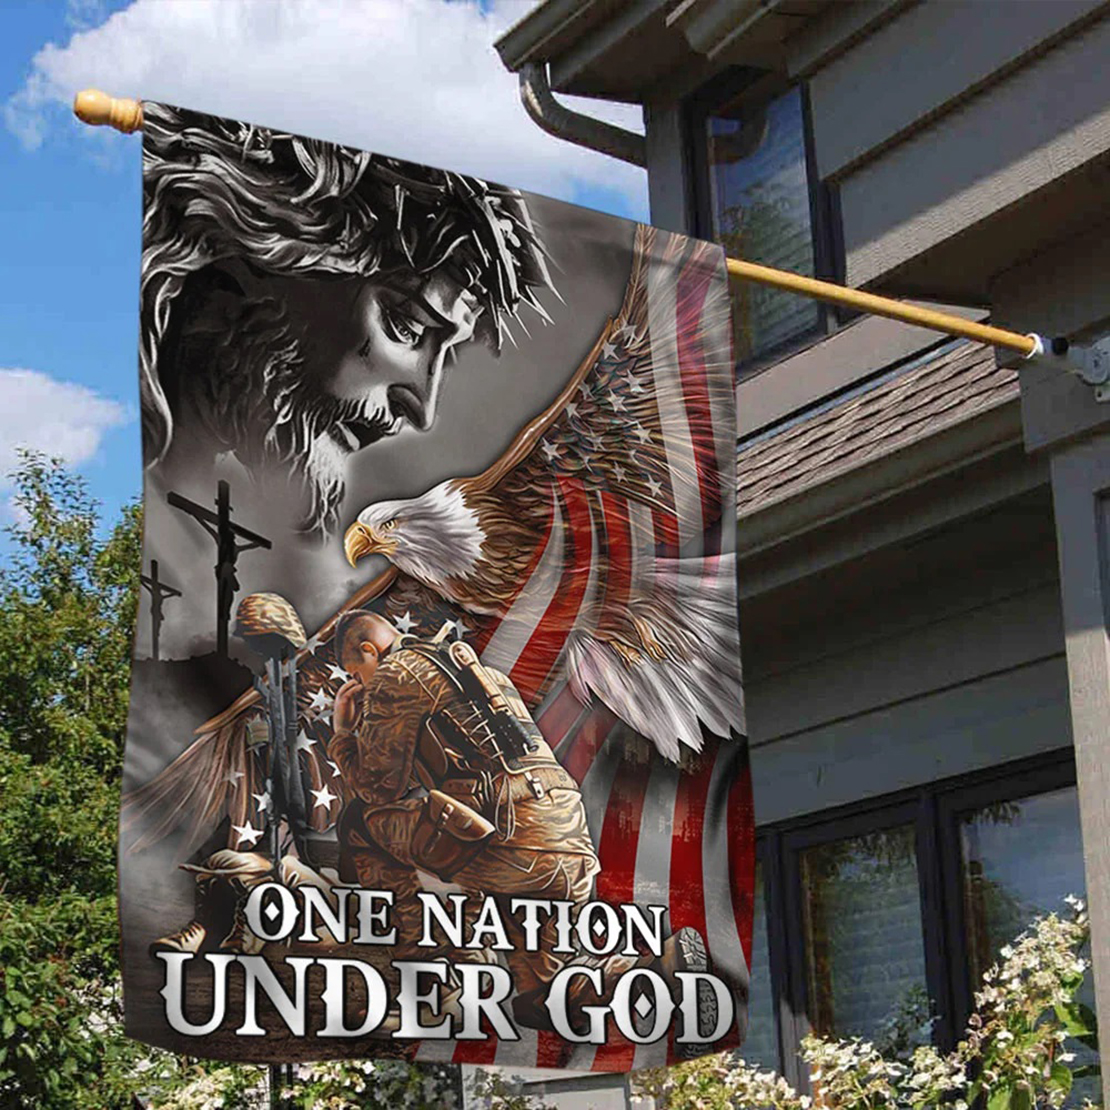 Veteran One nation under god eagle American flag - Picture 2